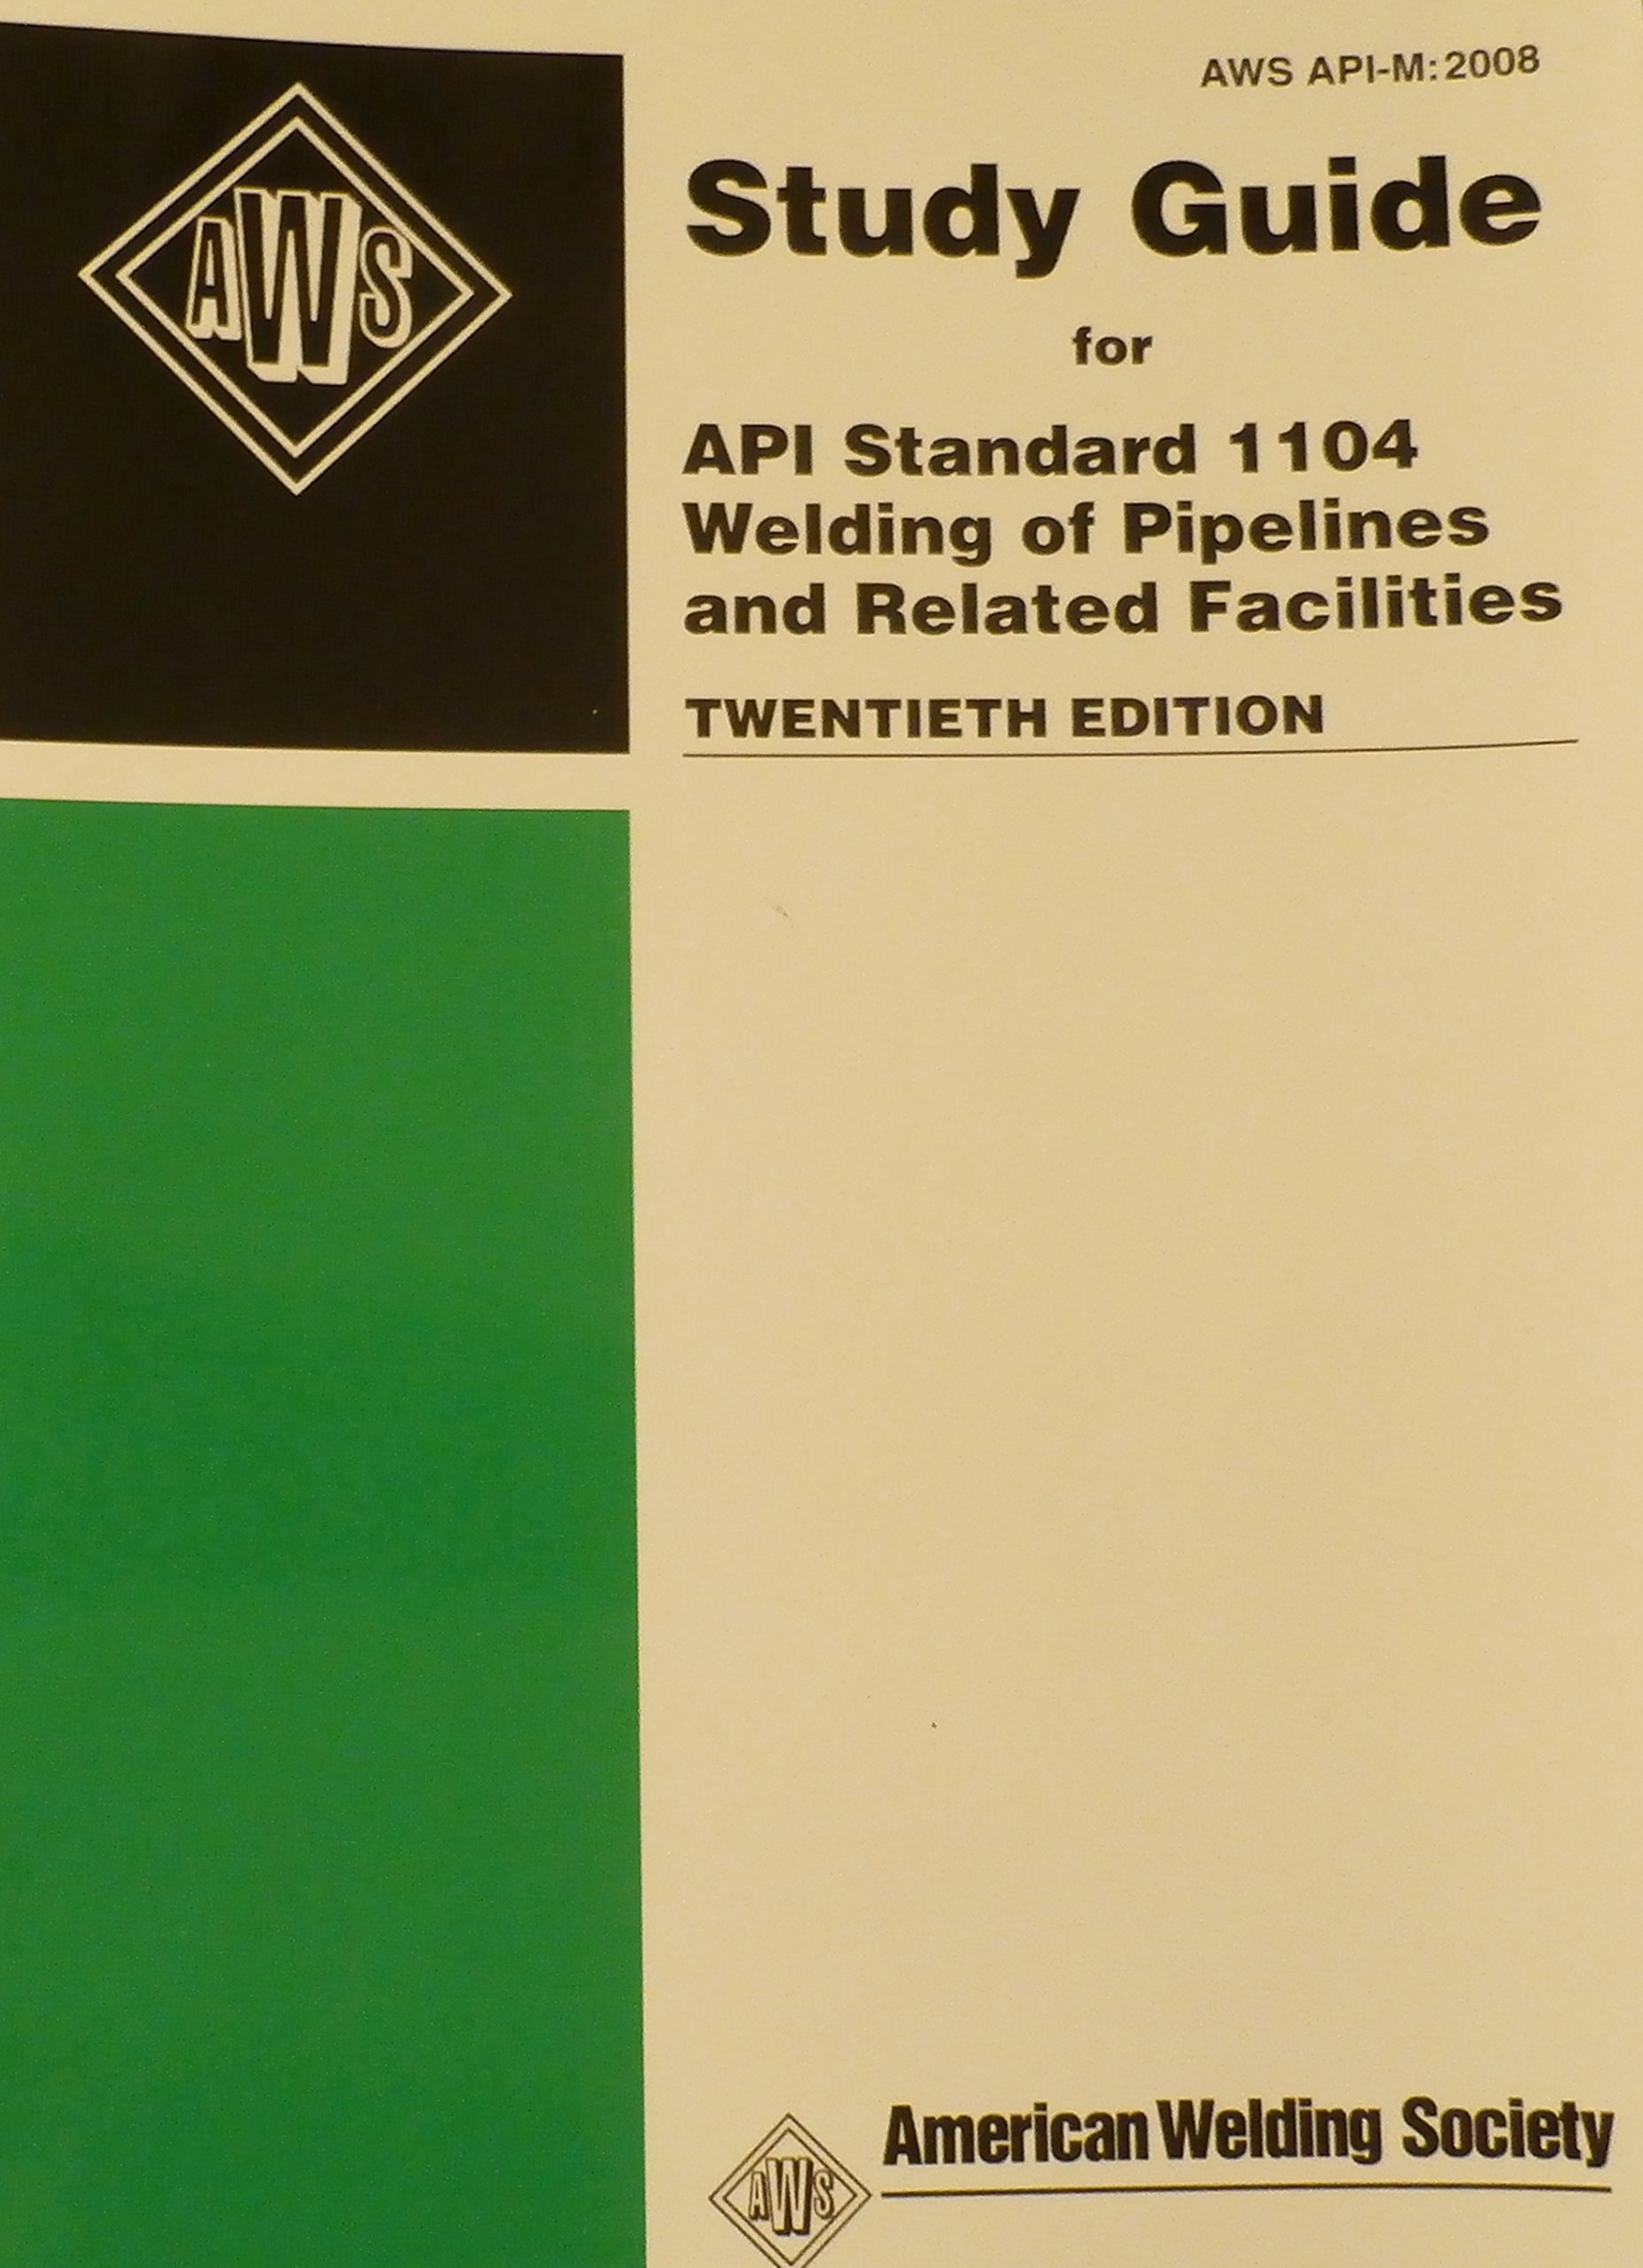 Study guide for api 1104 array study guide for api standard 1104 welding of pipelines and related rh amazon com fandeluxe Choice Image